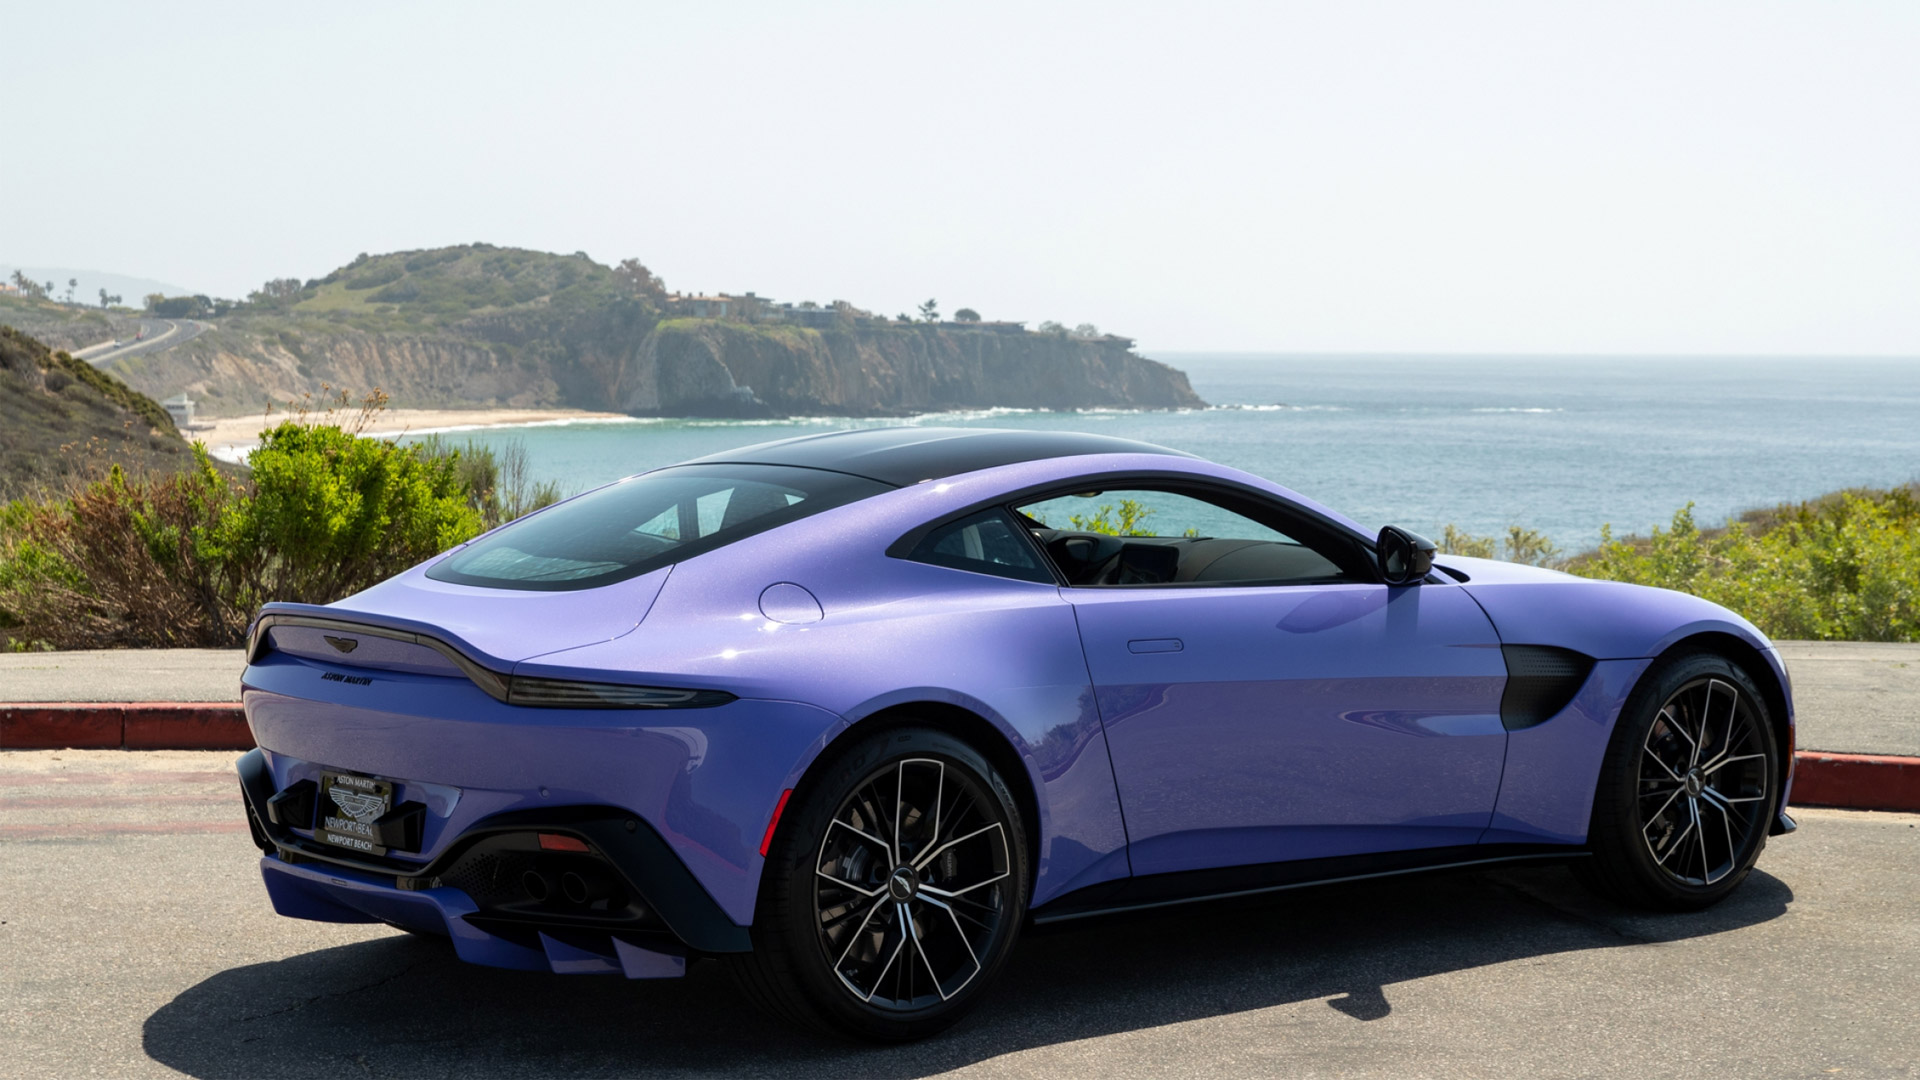 The Aston Martin Vantage Coupe in Ultra Violet Angled Rear View